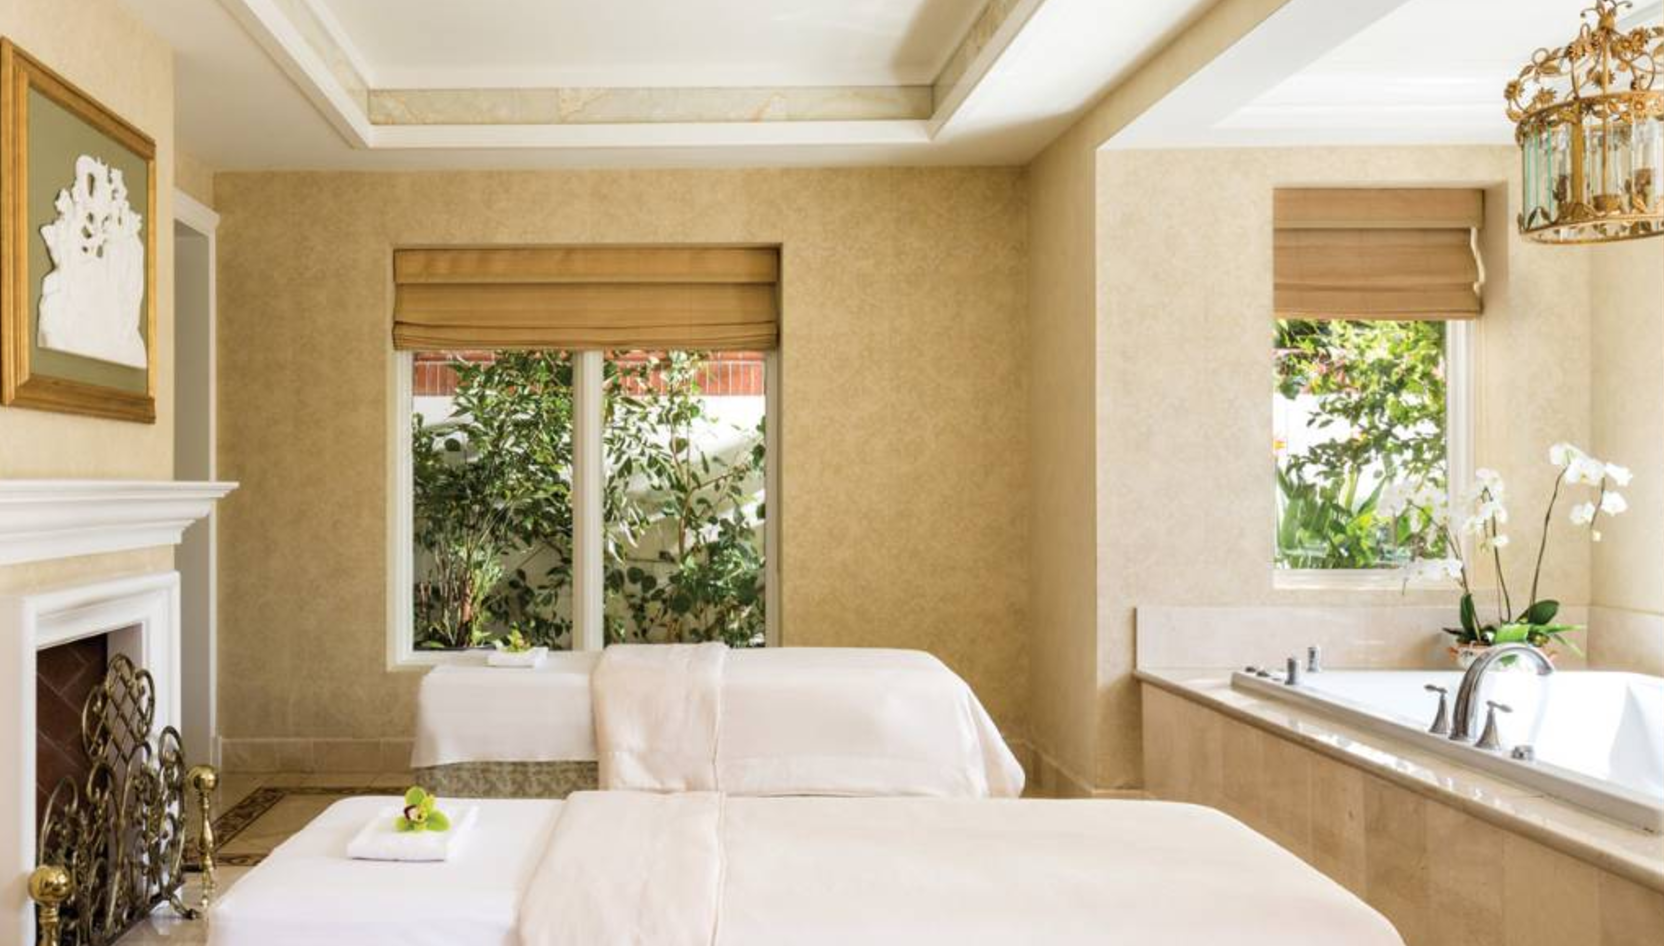 The Best Hotel Spas in Los Angeles for Mid-Trip Treatments